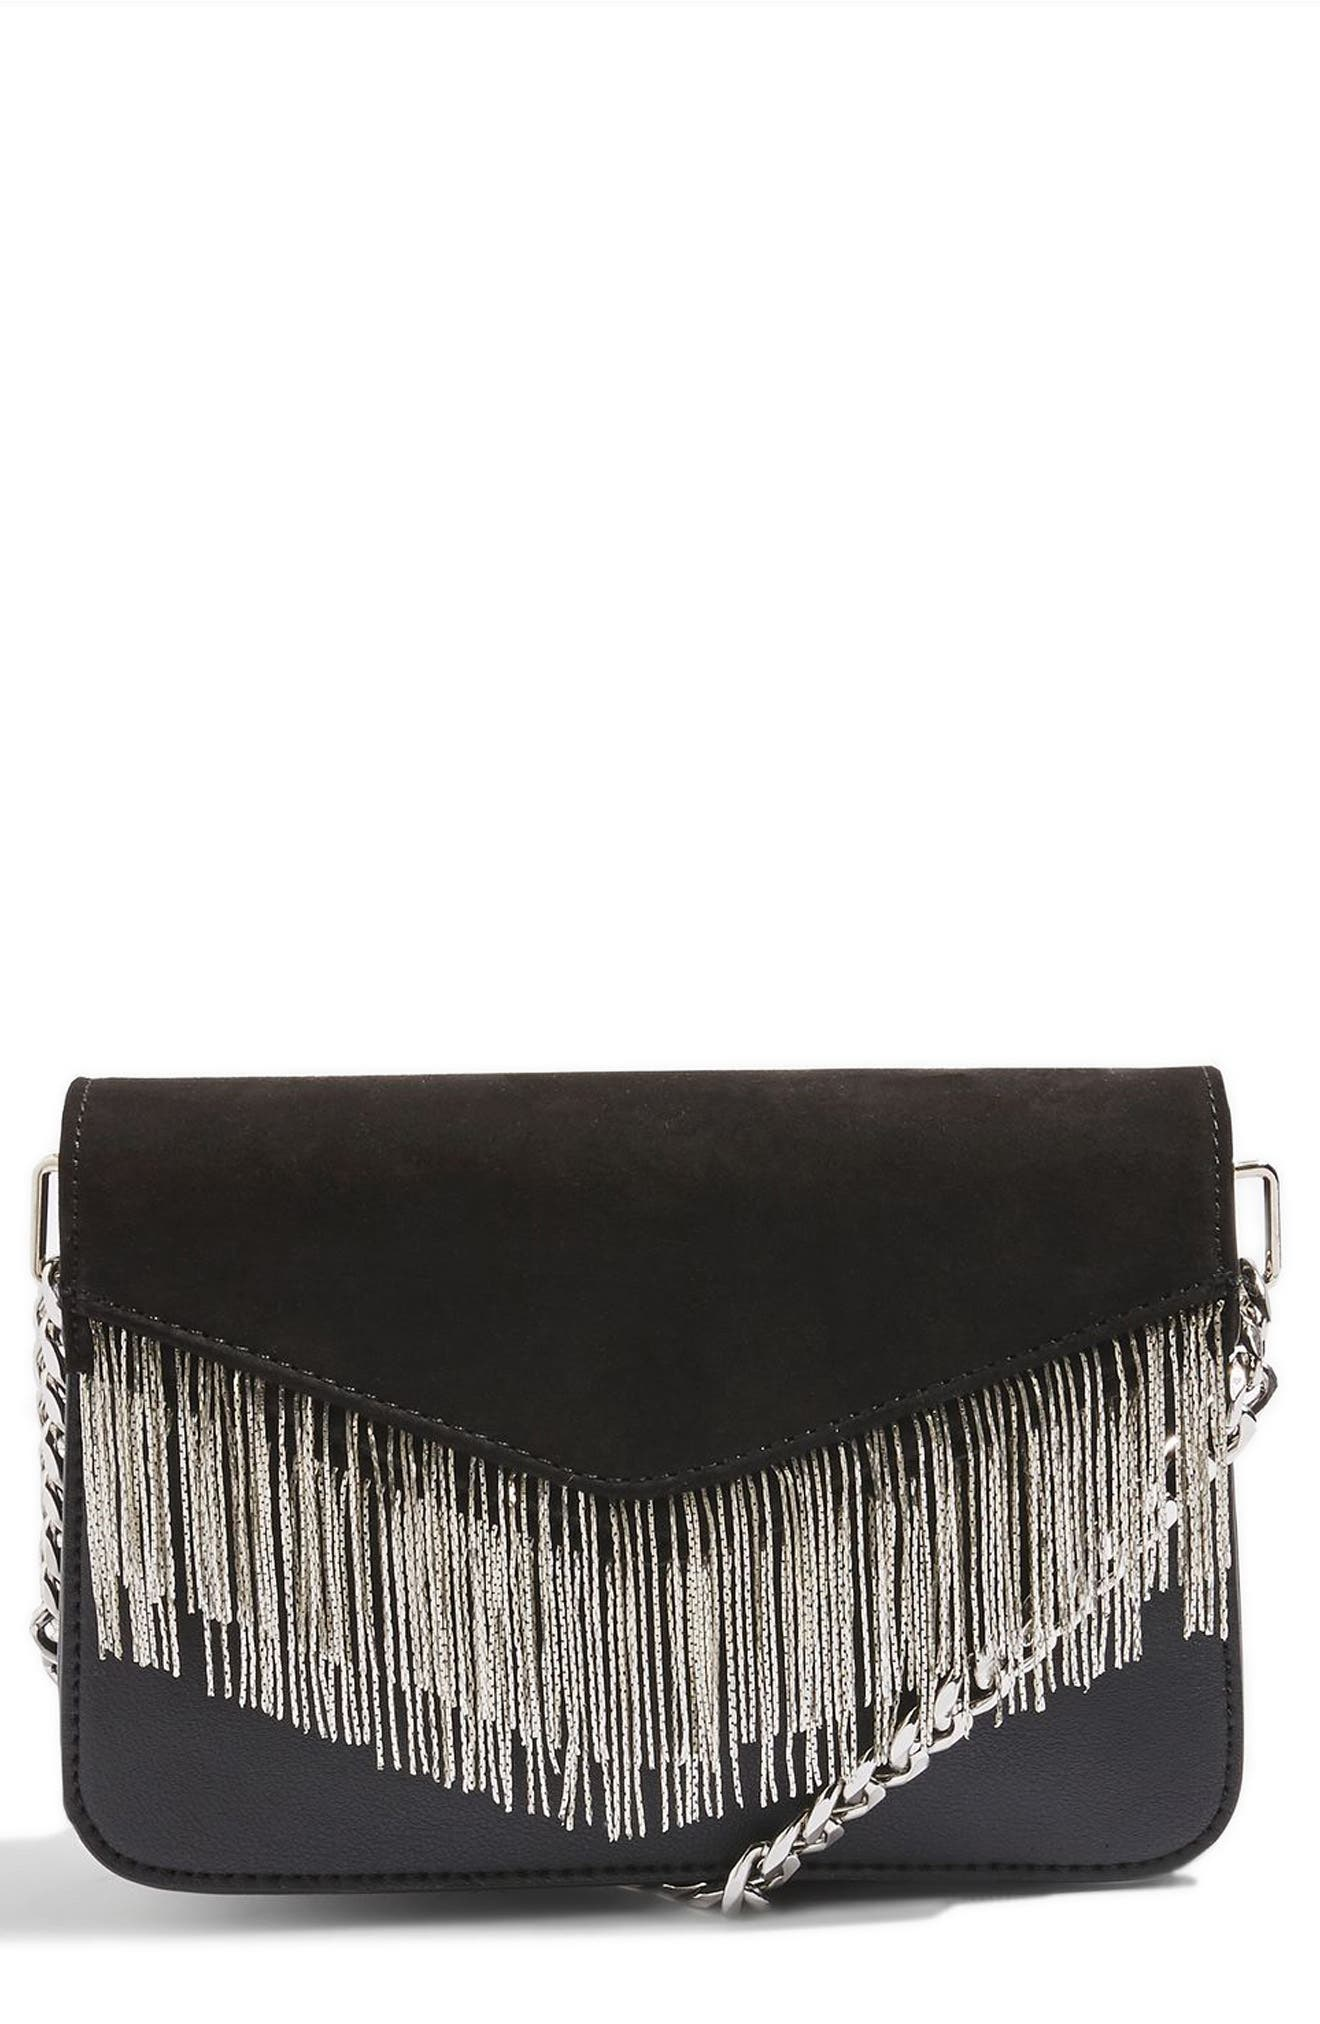 Main Image - Topshop Remy Chain Flap Faux Leather Crossbody Bag